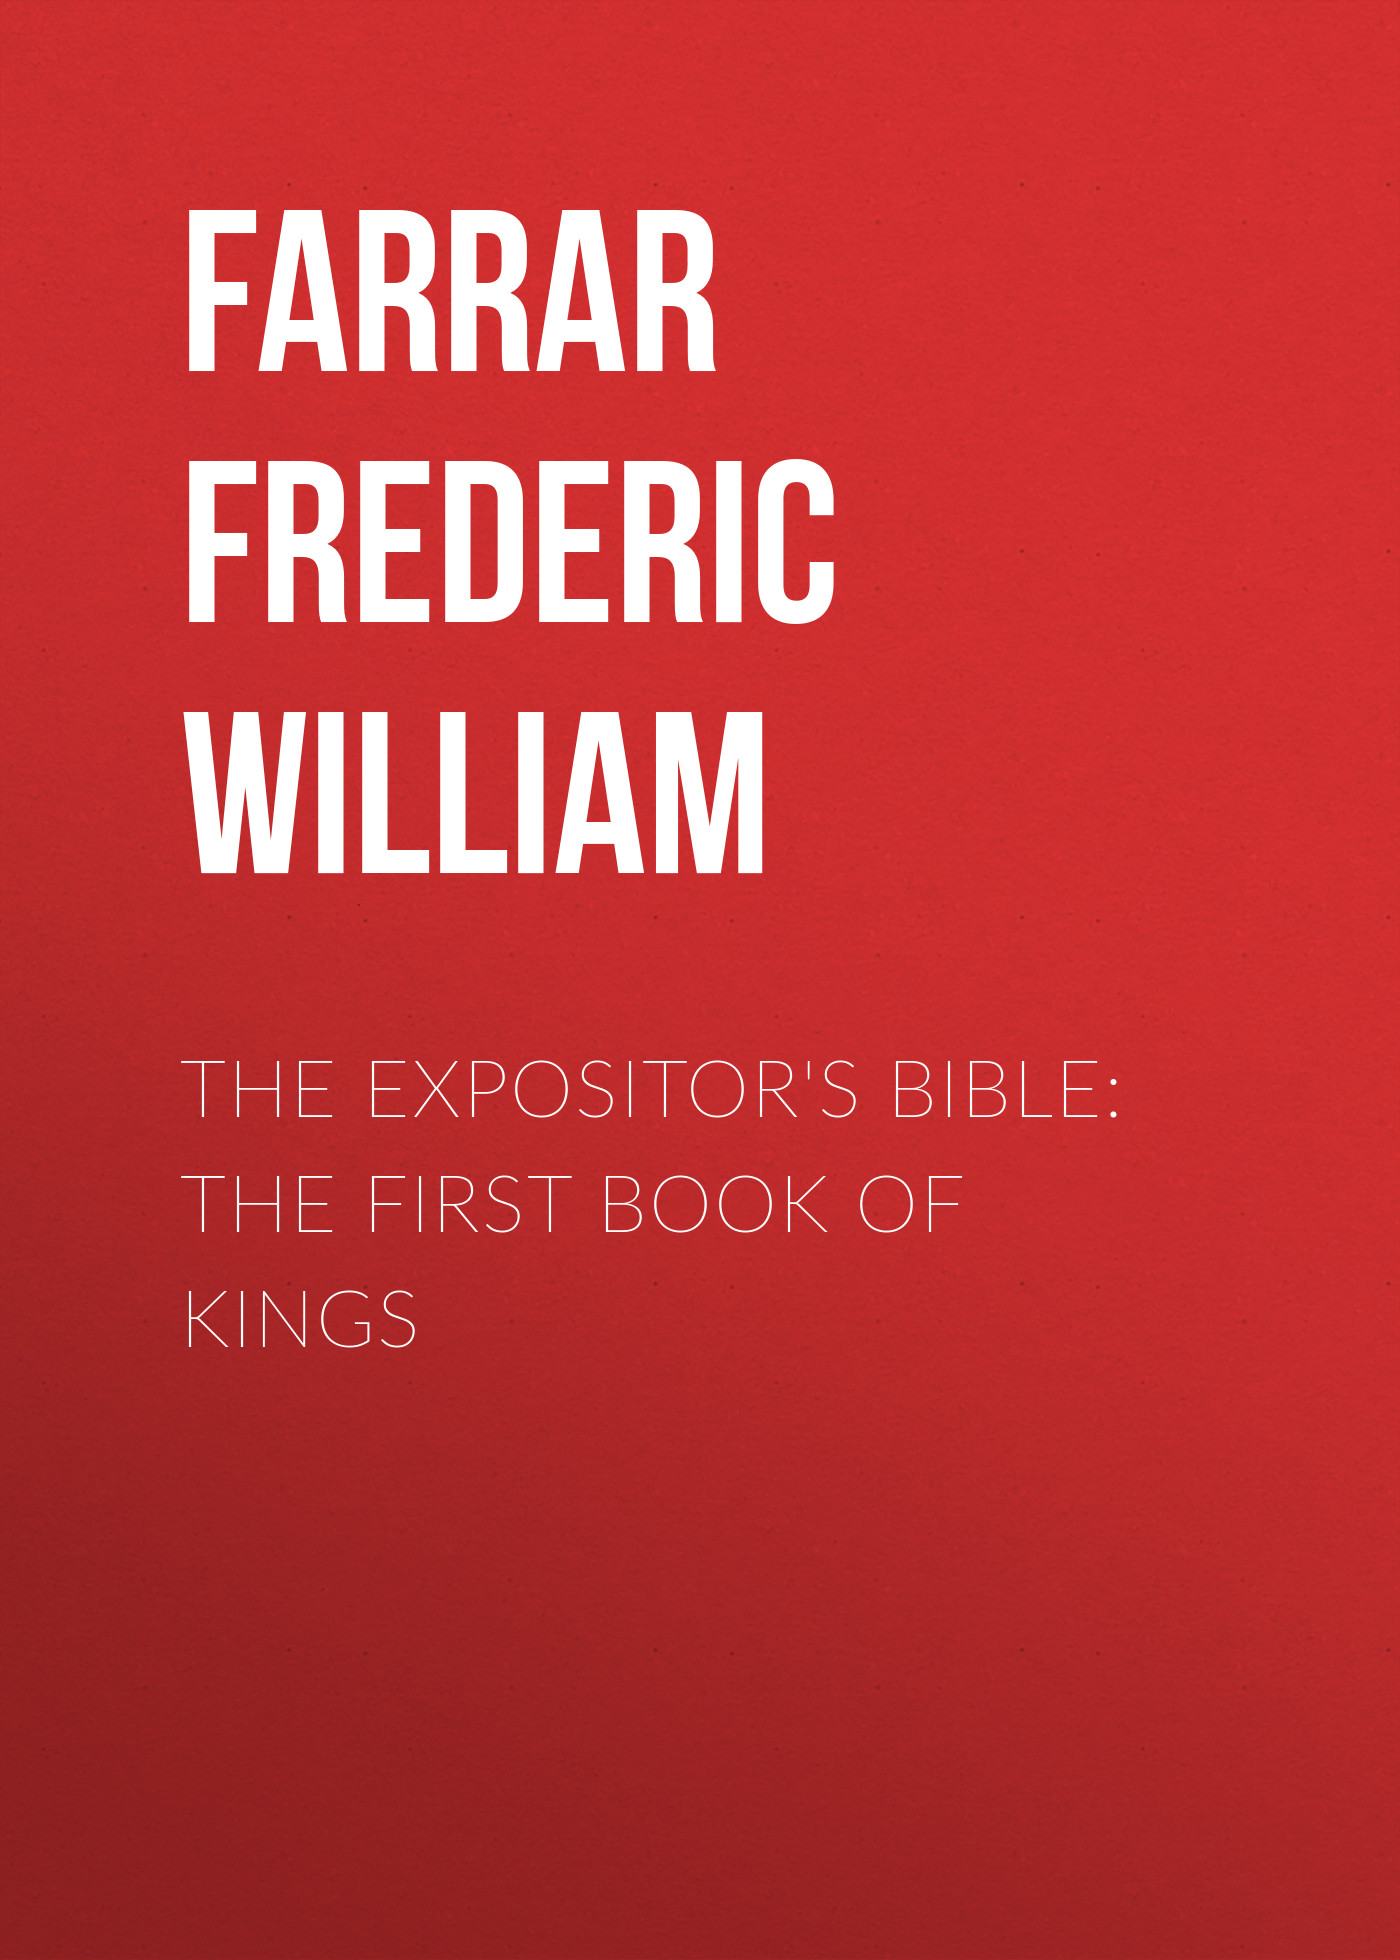 Farrar Frederic William The Expositor's Bible: The First Book of Kings kummer frederic arnold the ivory snuff box